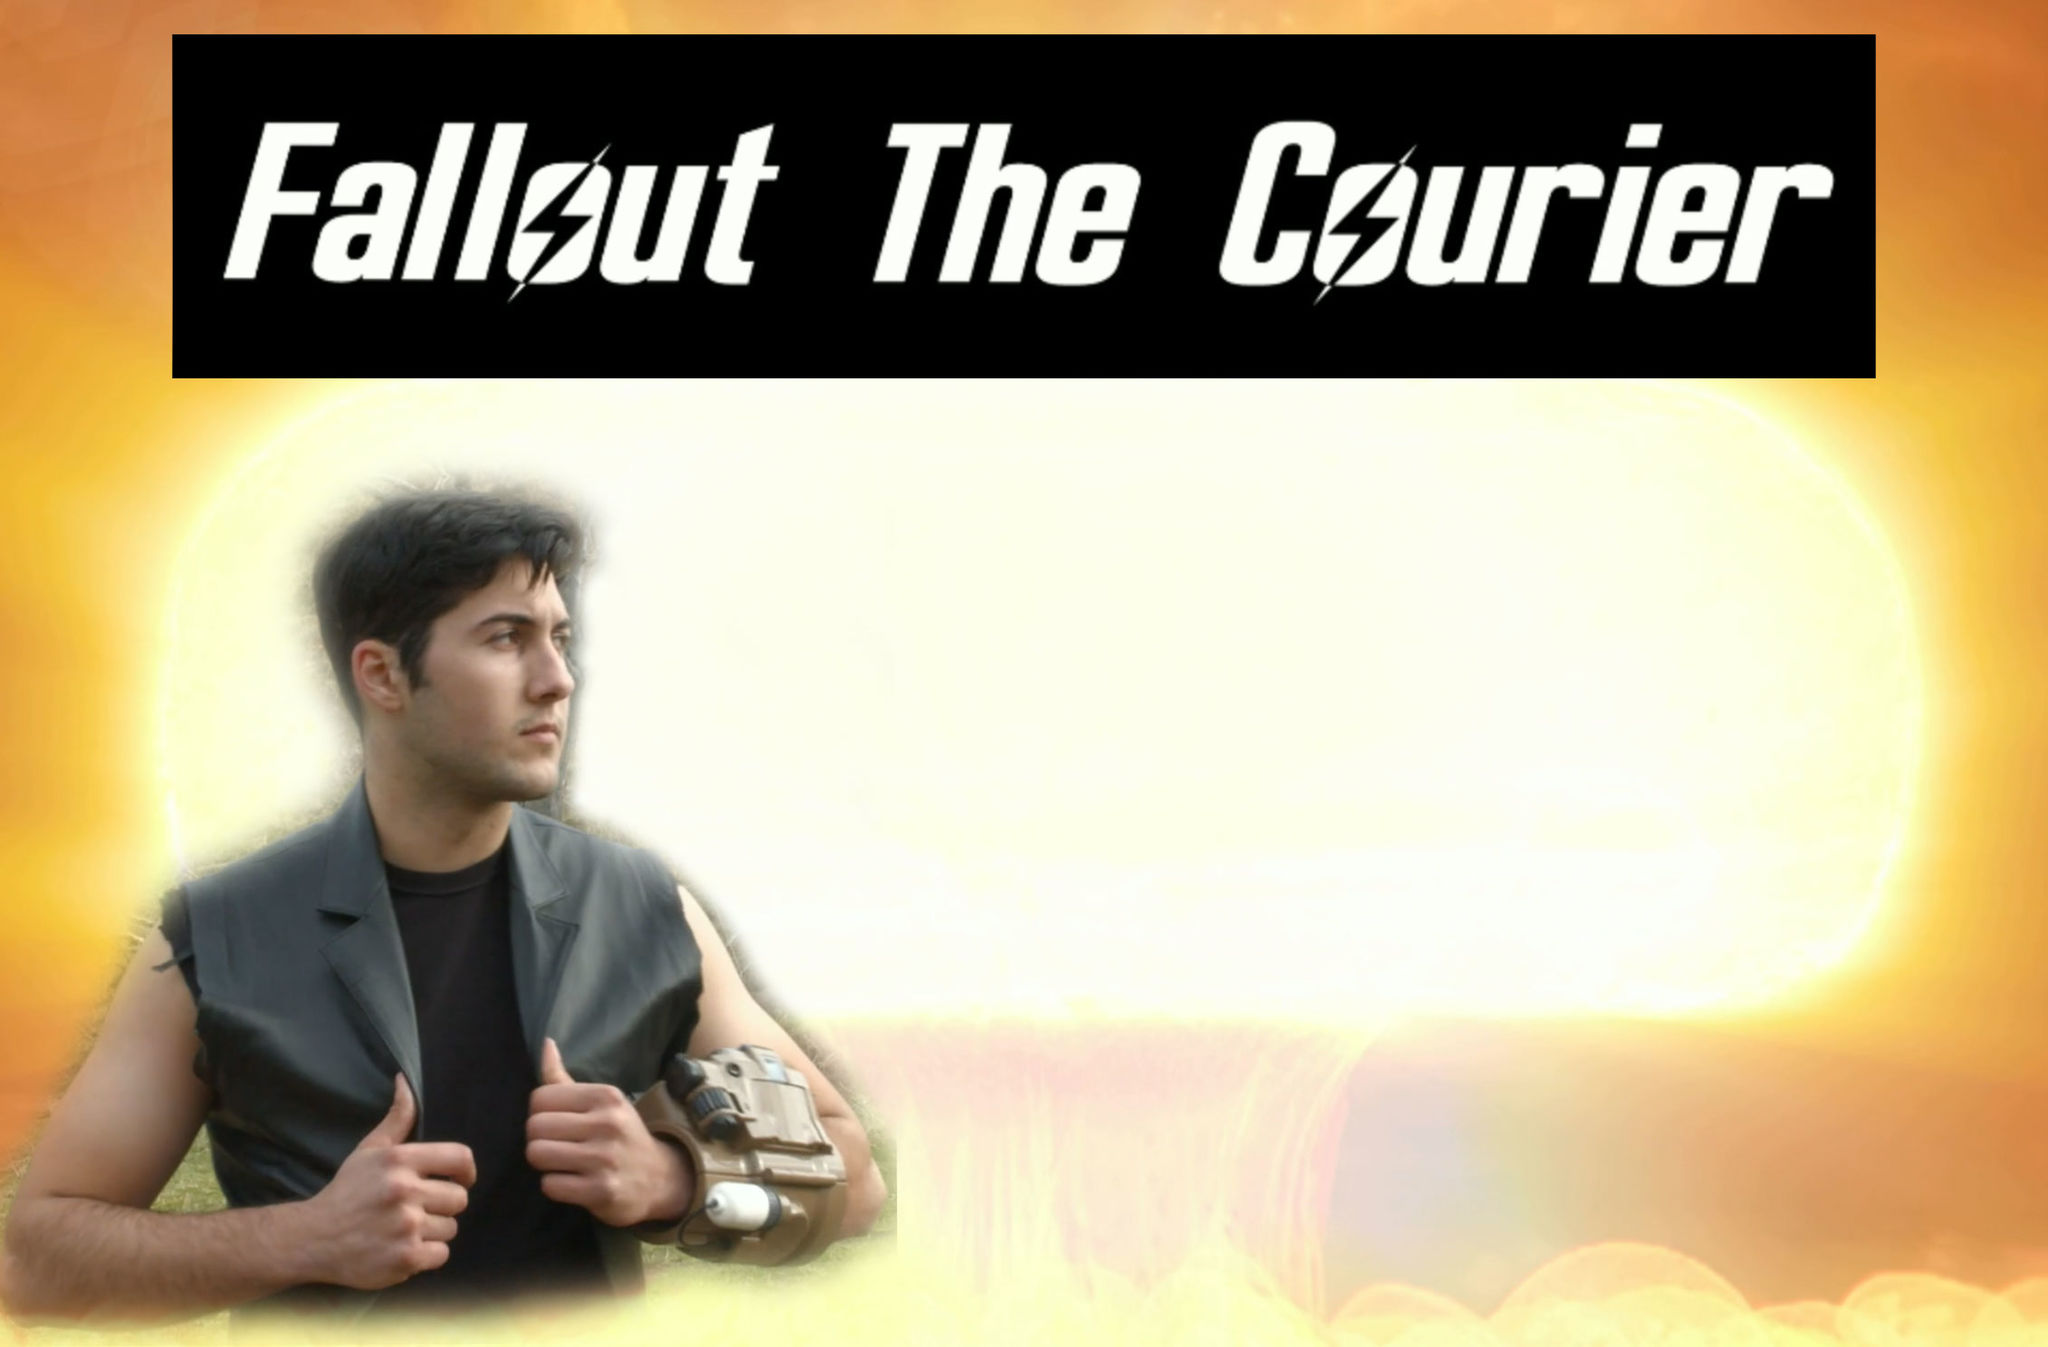 Fallout the Courier